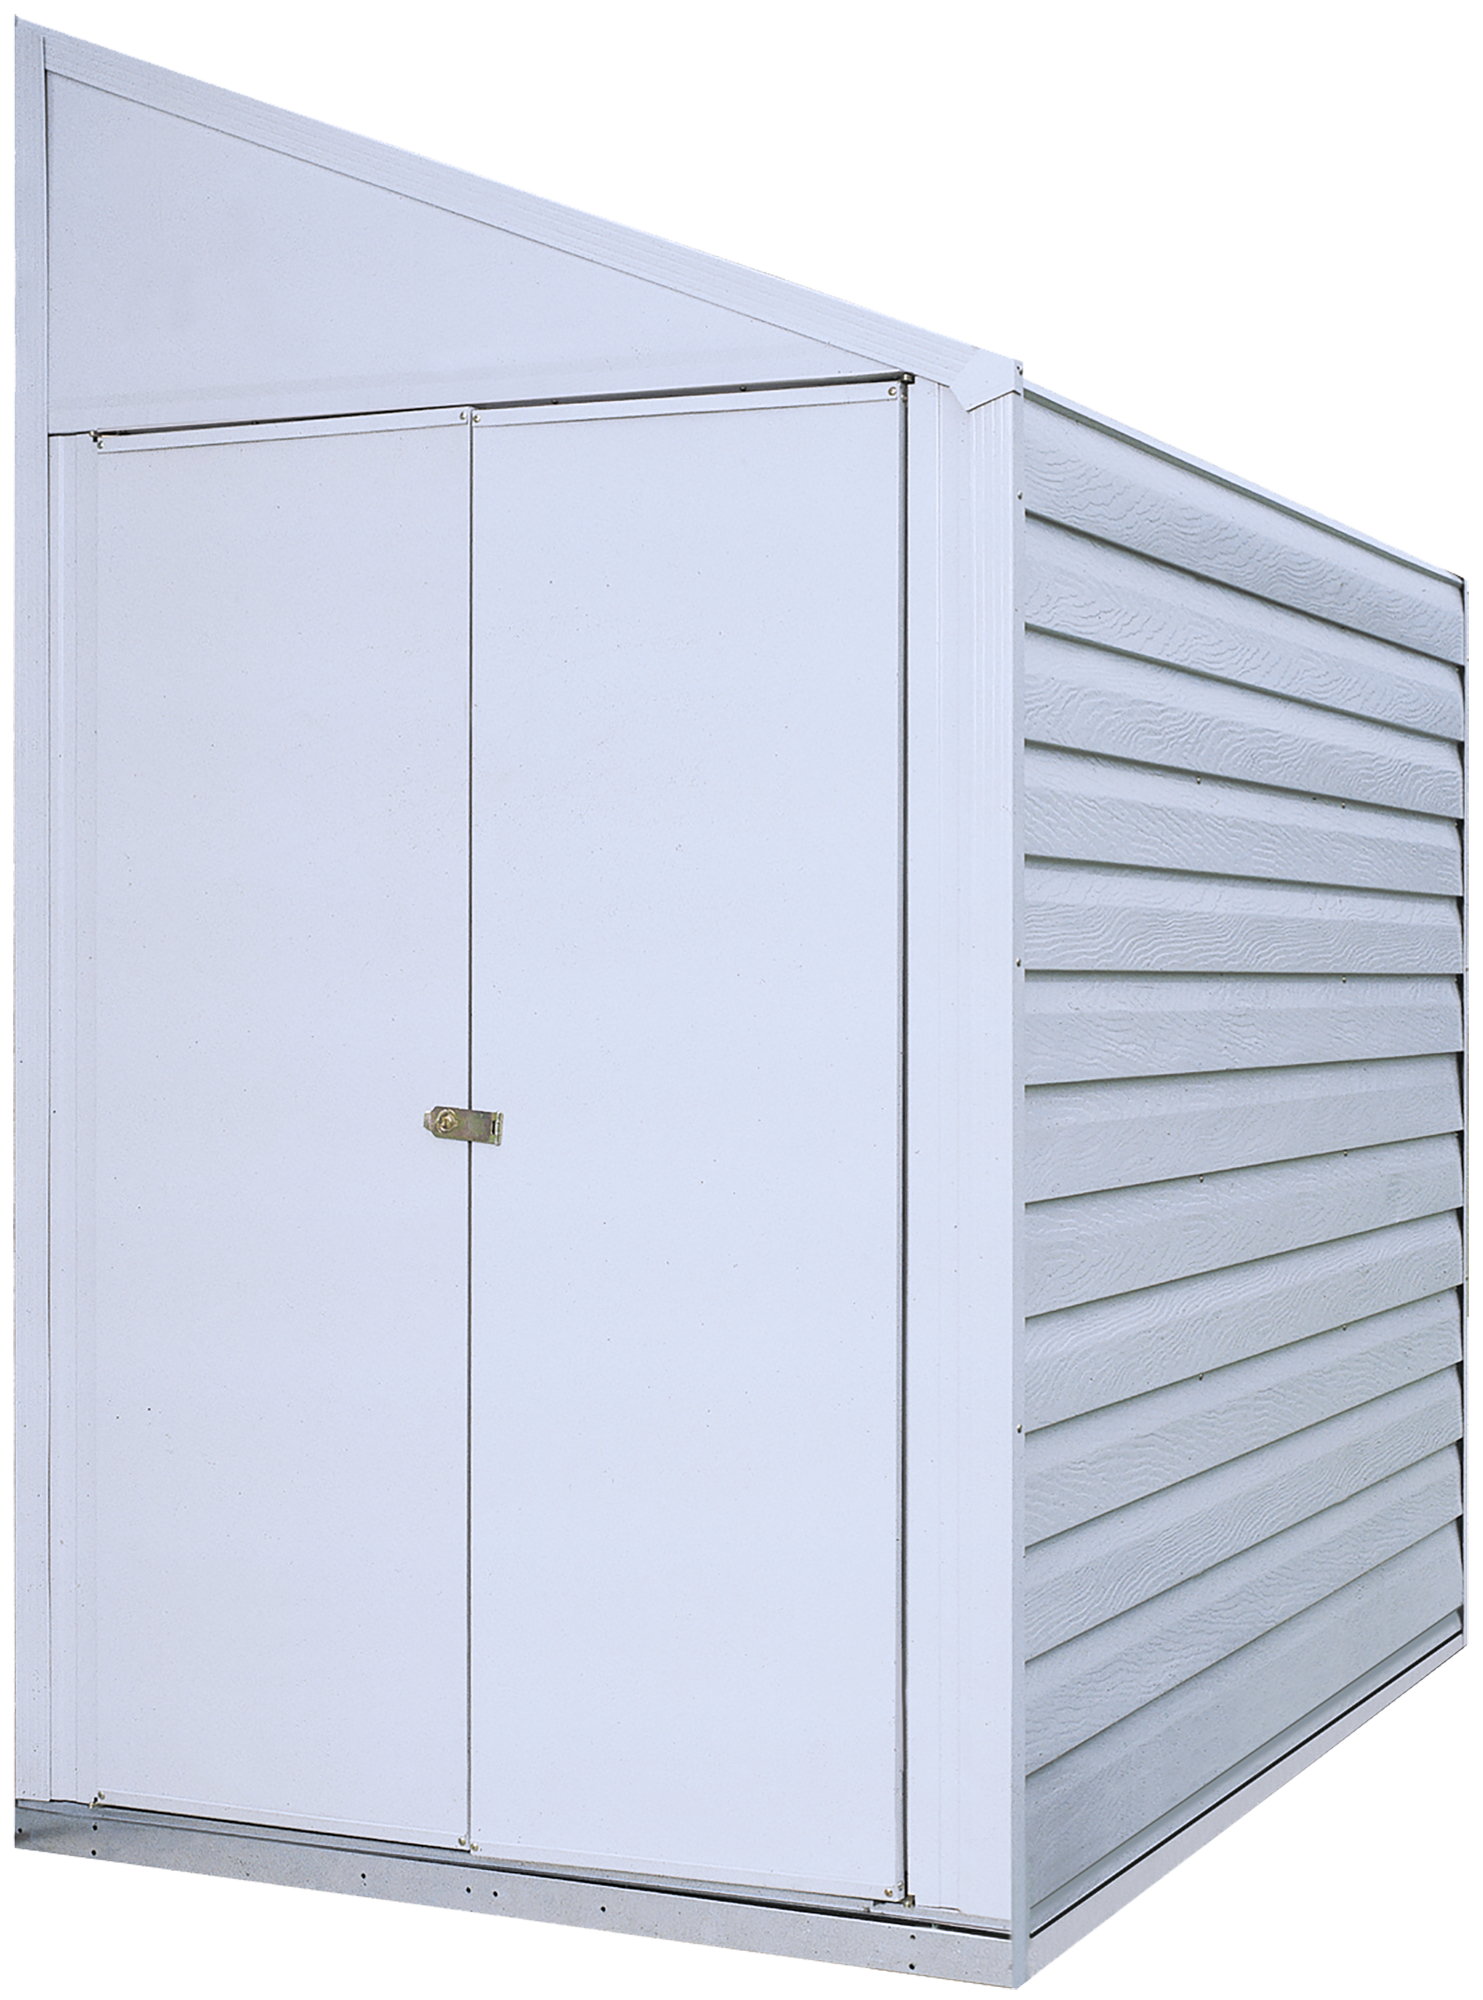 Steel Storage Shed Pent Roof Eggshell